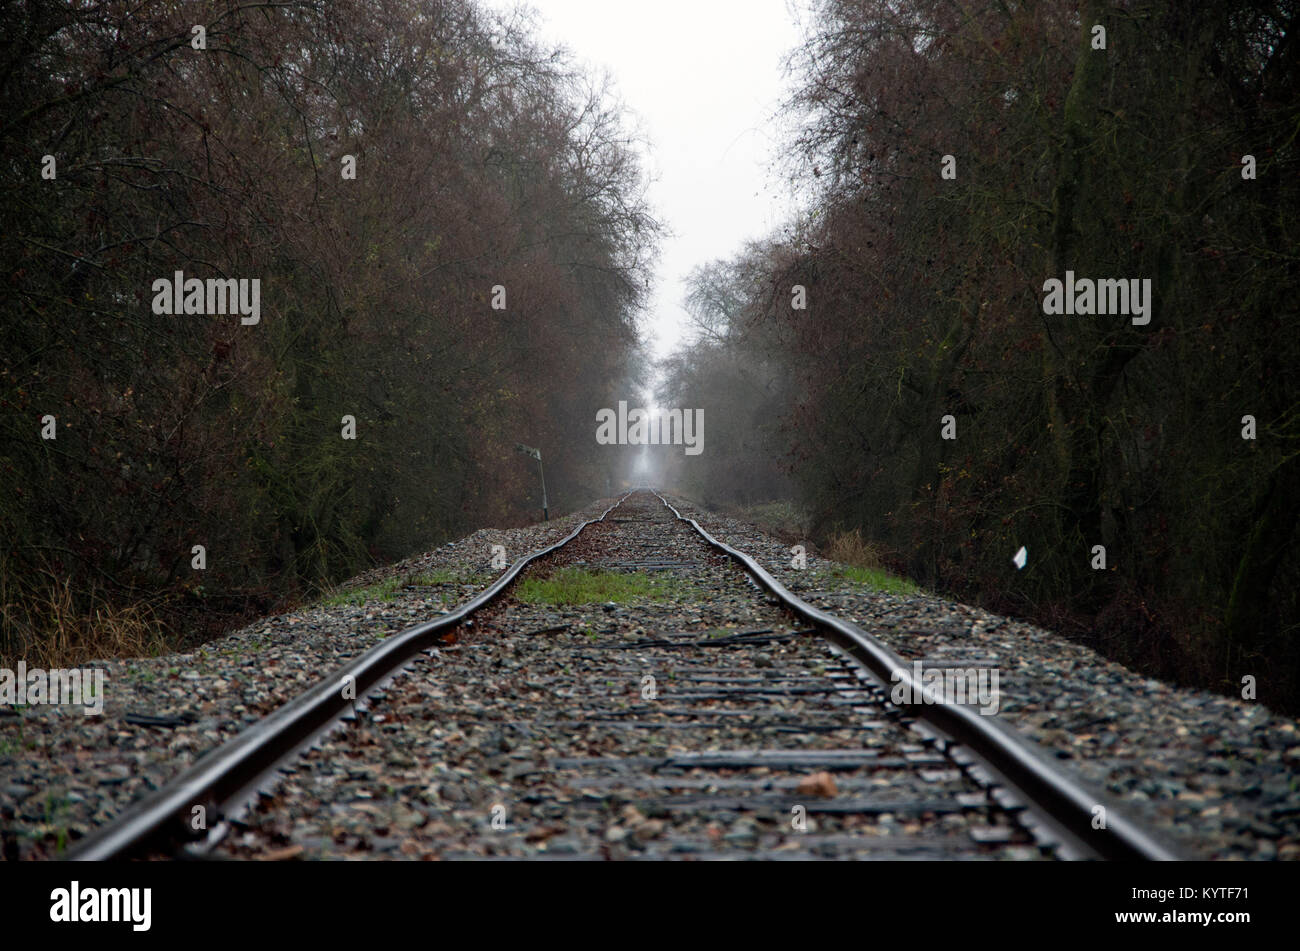 The early morning fog shrouds the distant train tracks. Stock Photo